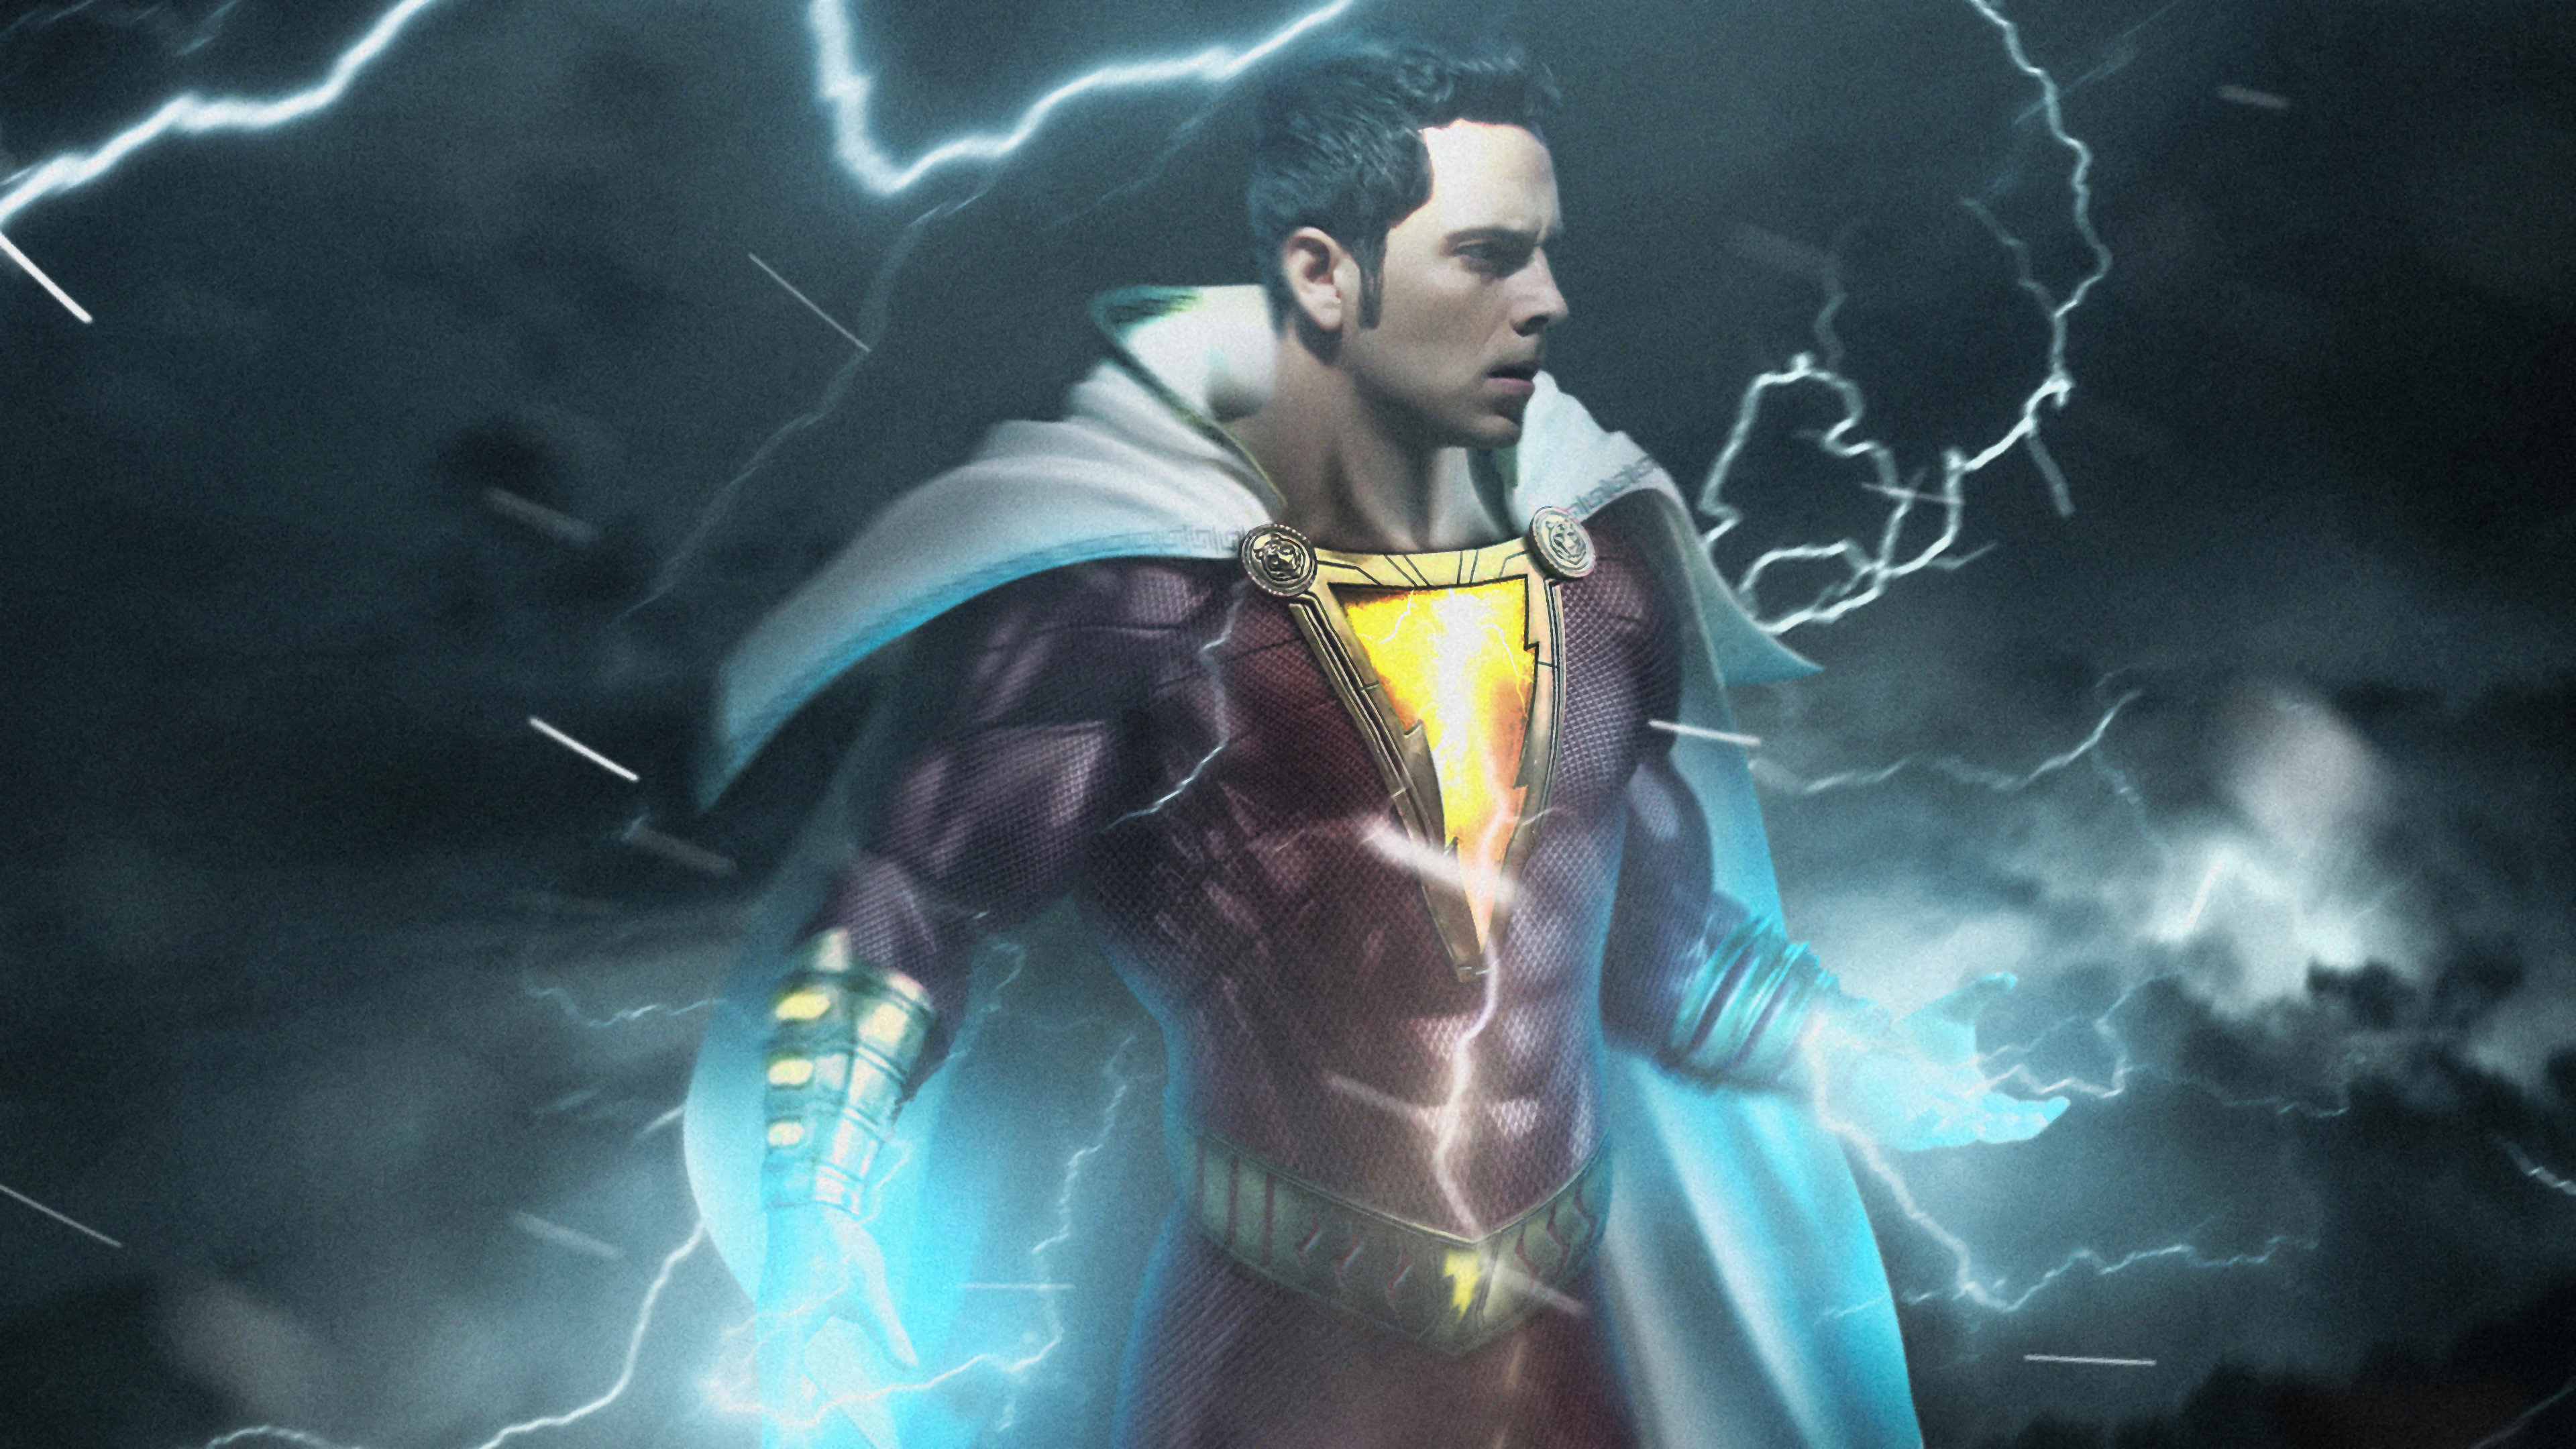 Shazam 4K 8K HD DC Wallpaper 3840x2160